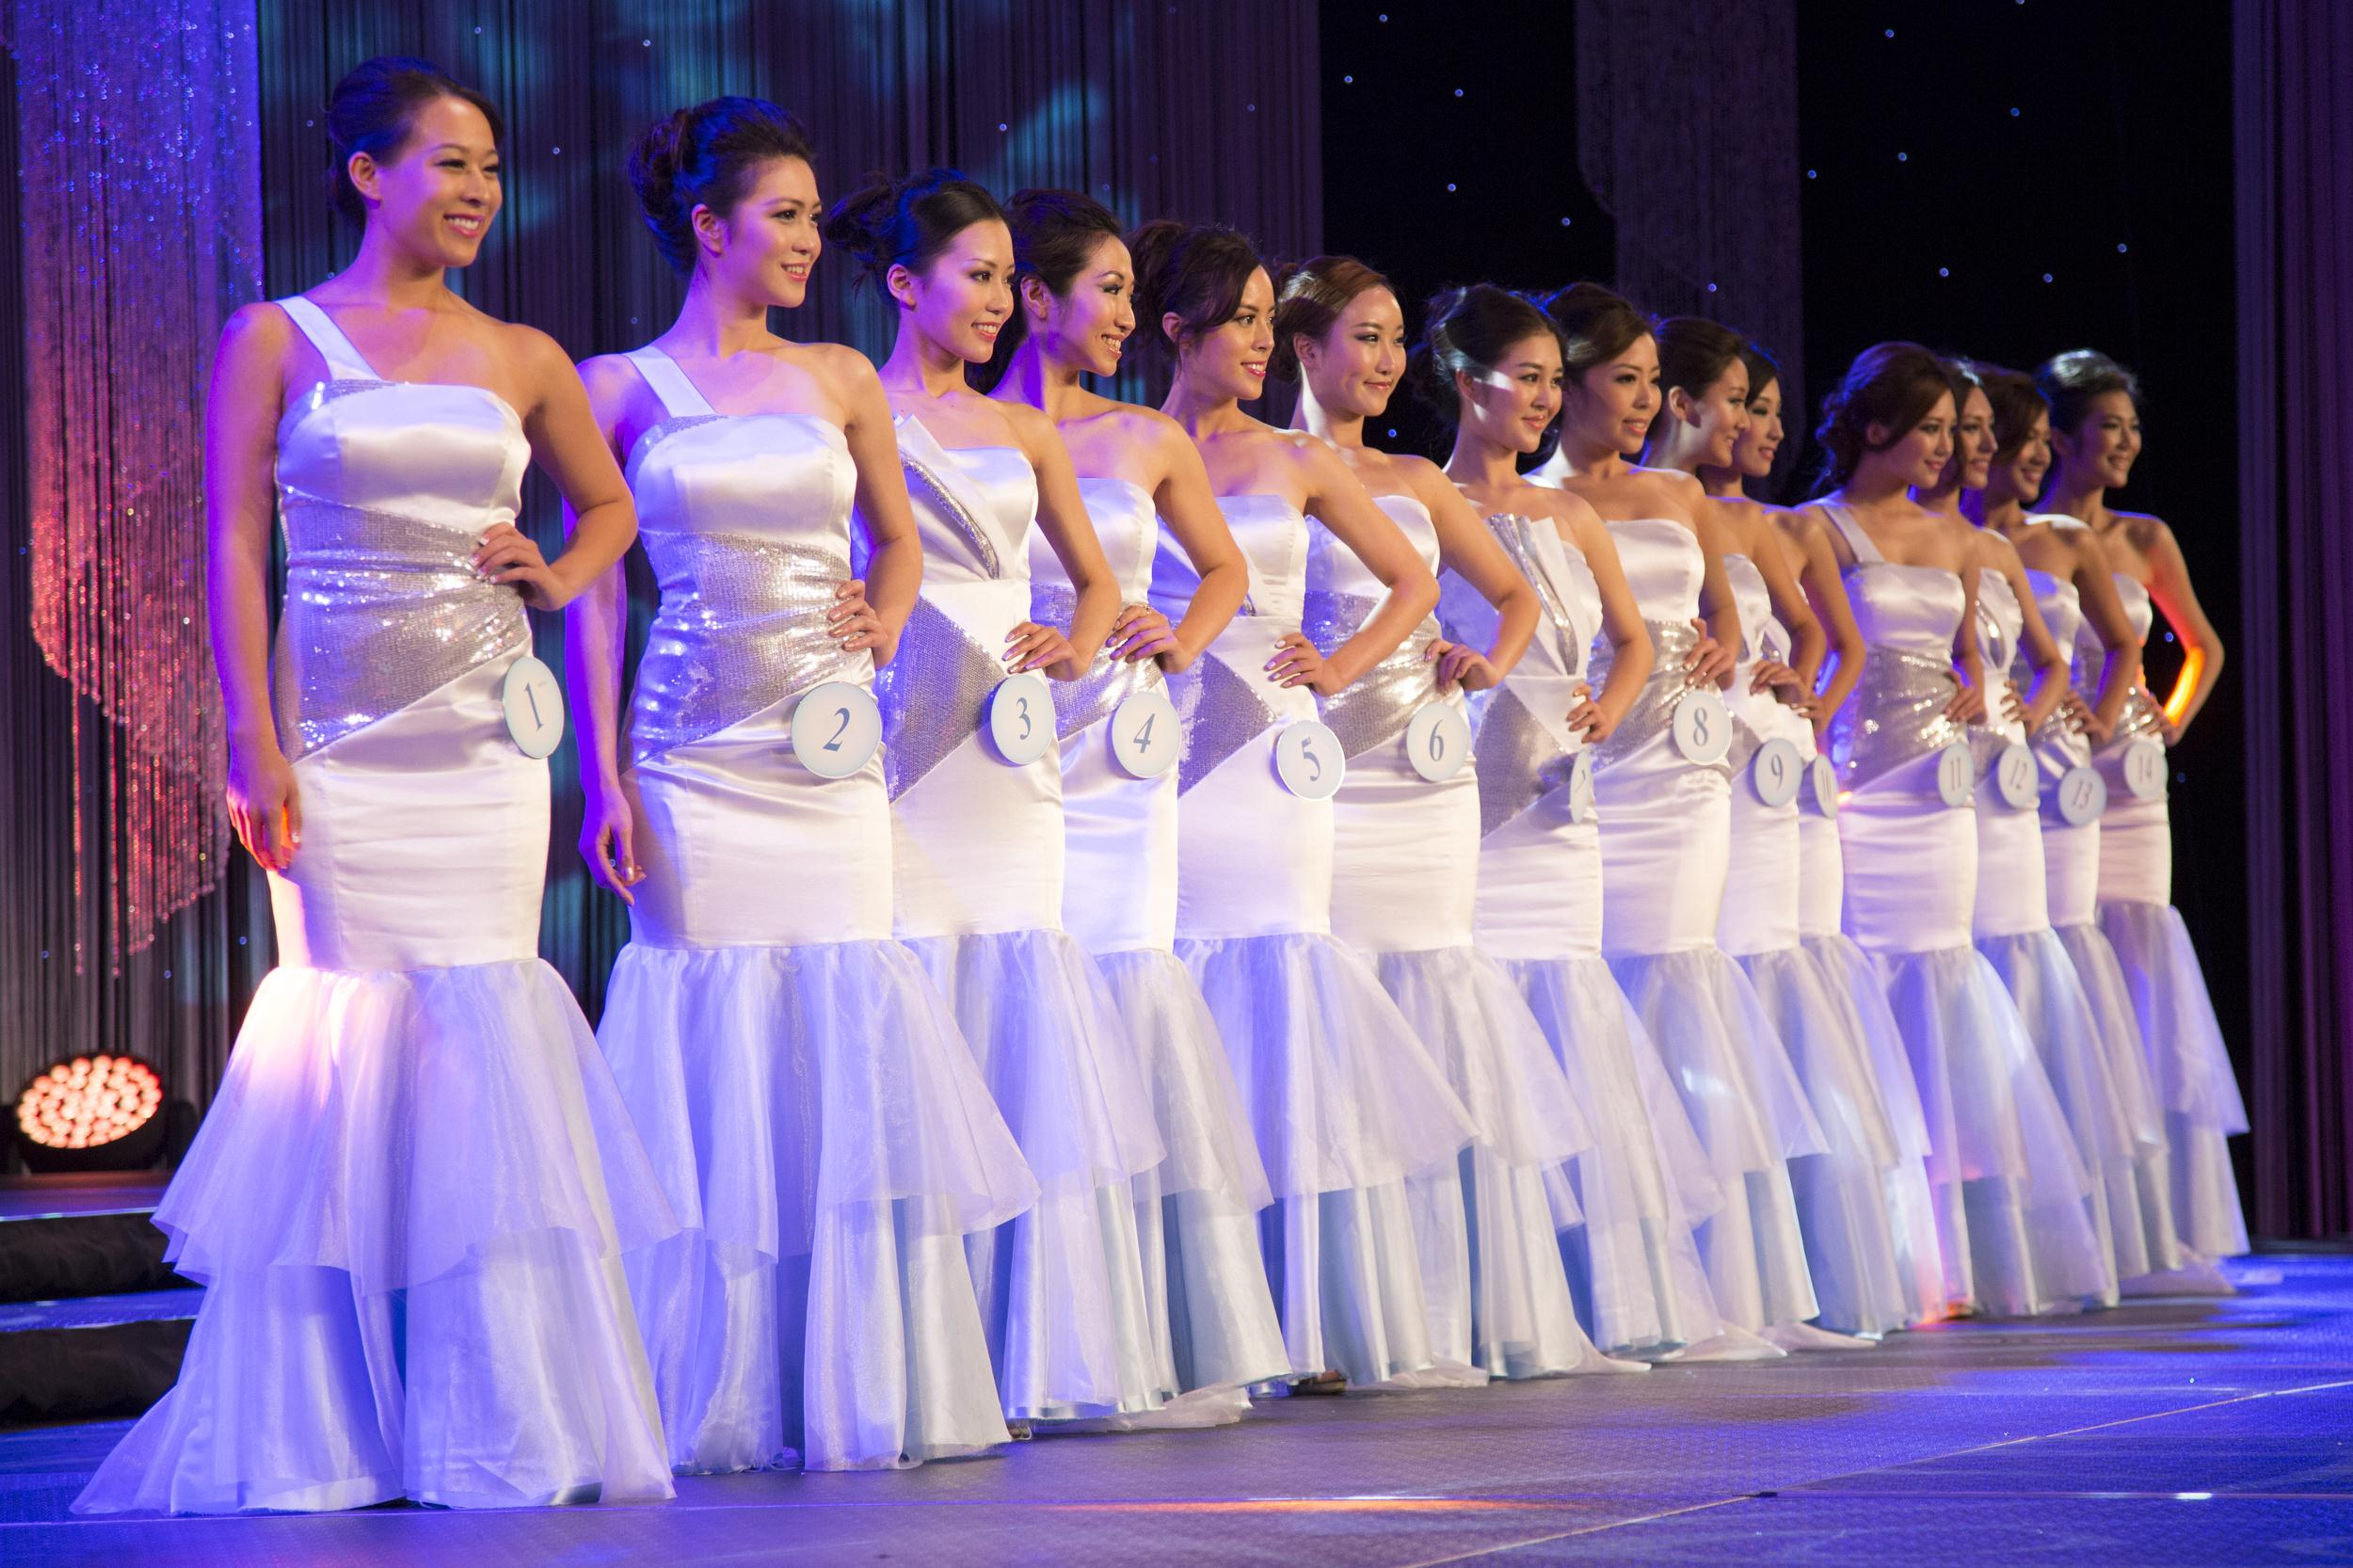 Tiara time at miss ny chinese beauty pageant nbc news for Asian cuisine mohegan lake ny